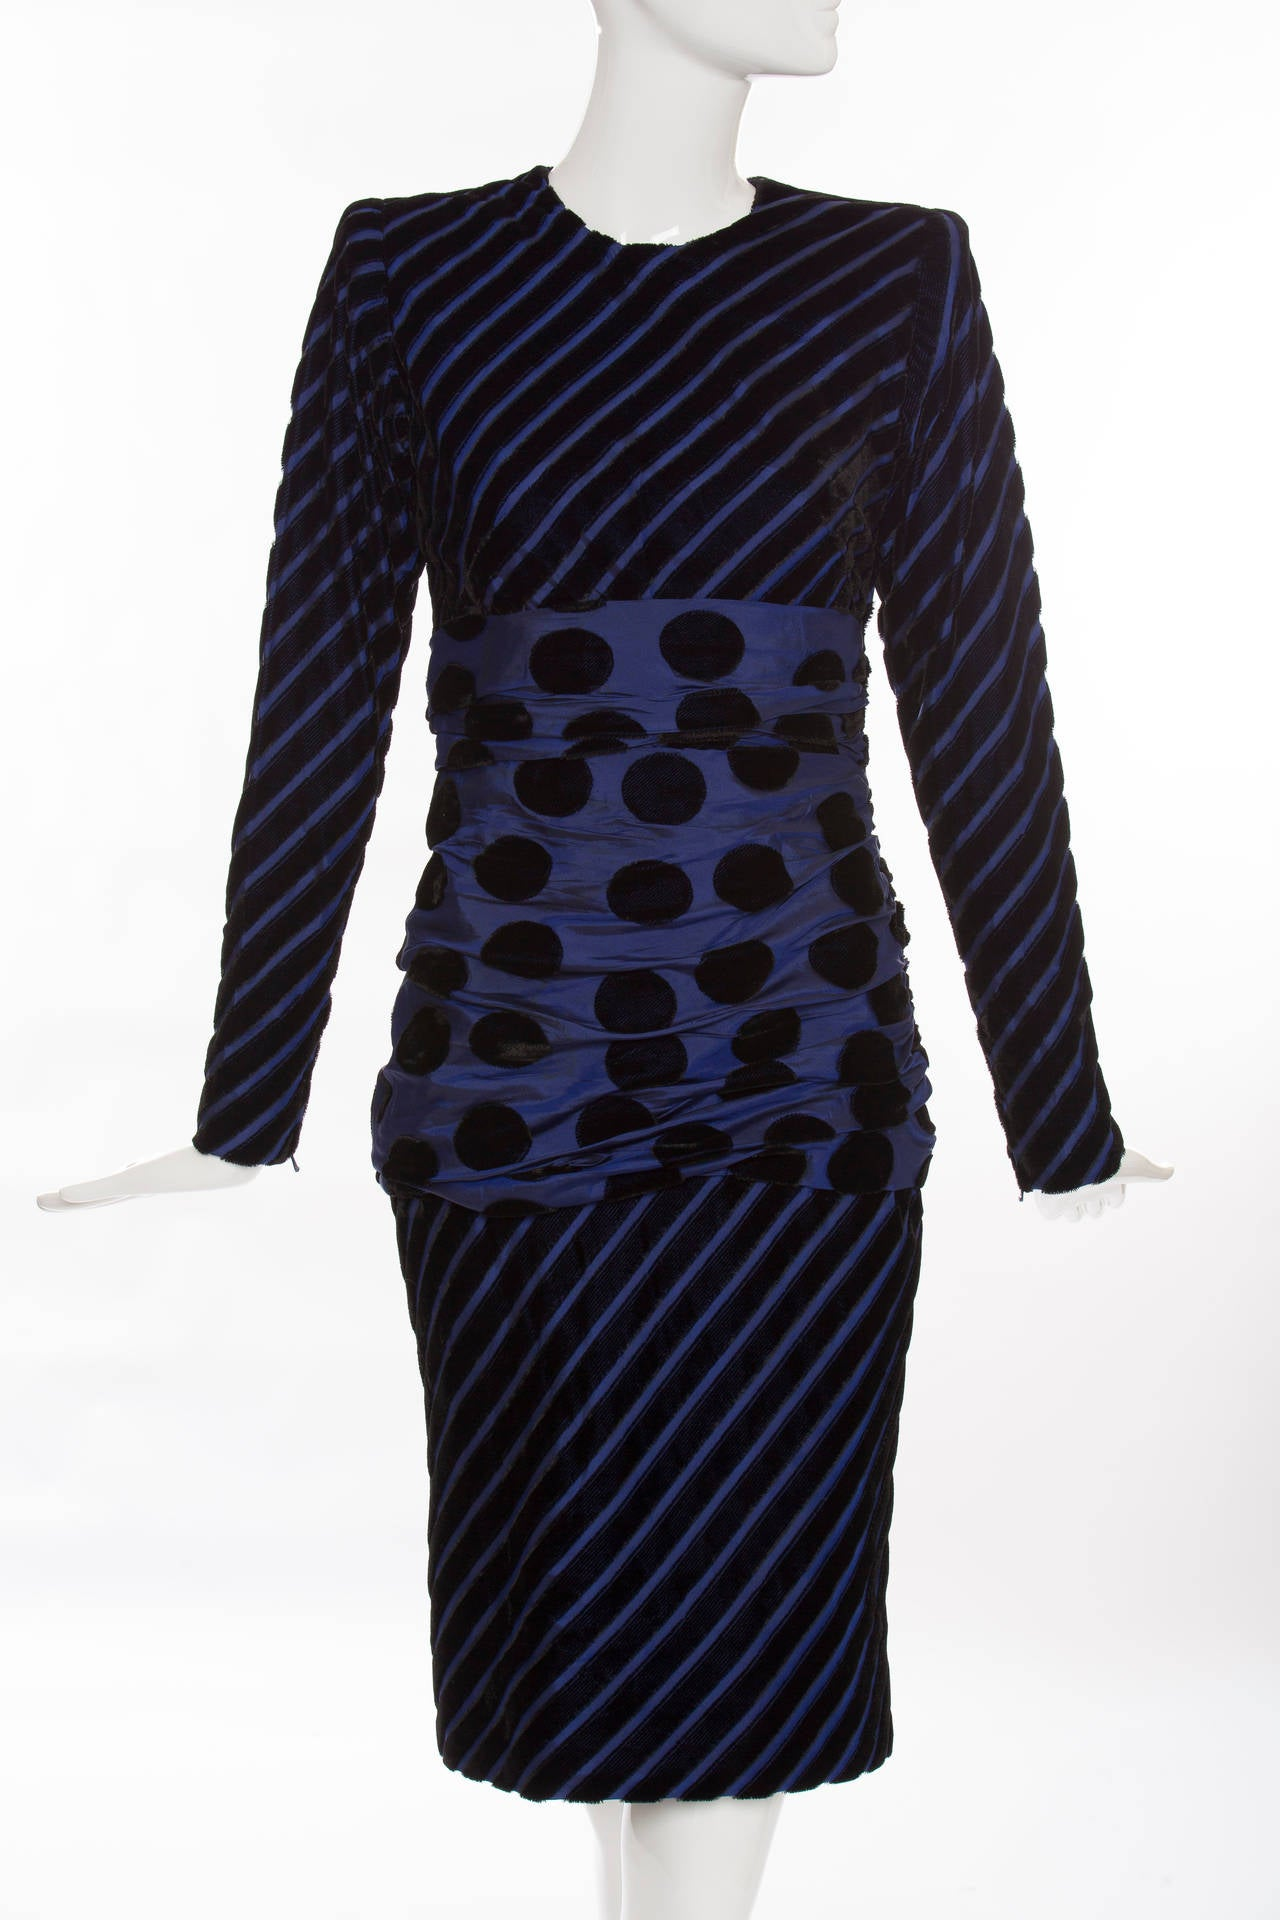 Givenchy Haute Couture, circa 1980's long sleeve striped velvet and taffeta dress, double side zip, shirred taffeta and polka-dot velvet waist, fully lined in silk.